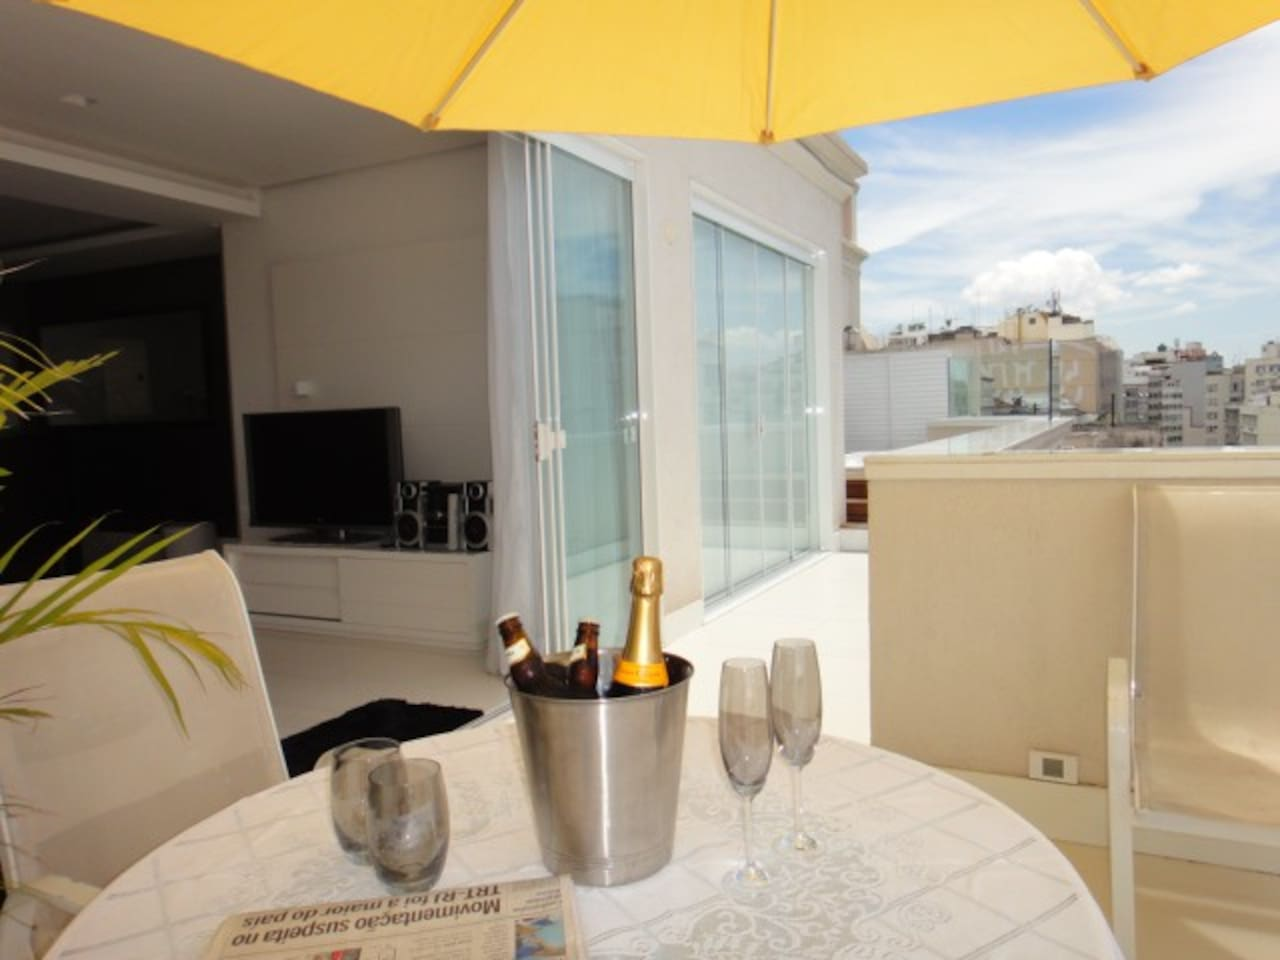 A luxury Penthouse in fashionable Ipanema Beach enjoy life from the private Jacuzzi.  Ipanema beach and Copacabana Beach, a few minutes walk on the same street. Shops, bars and restaurants all located within a minute stroll.